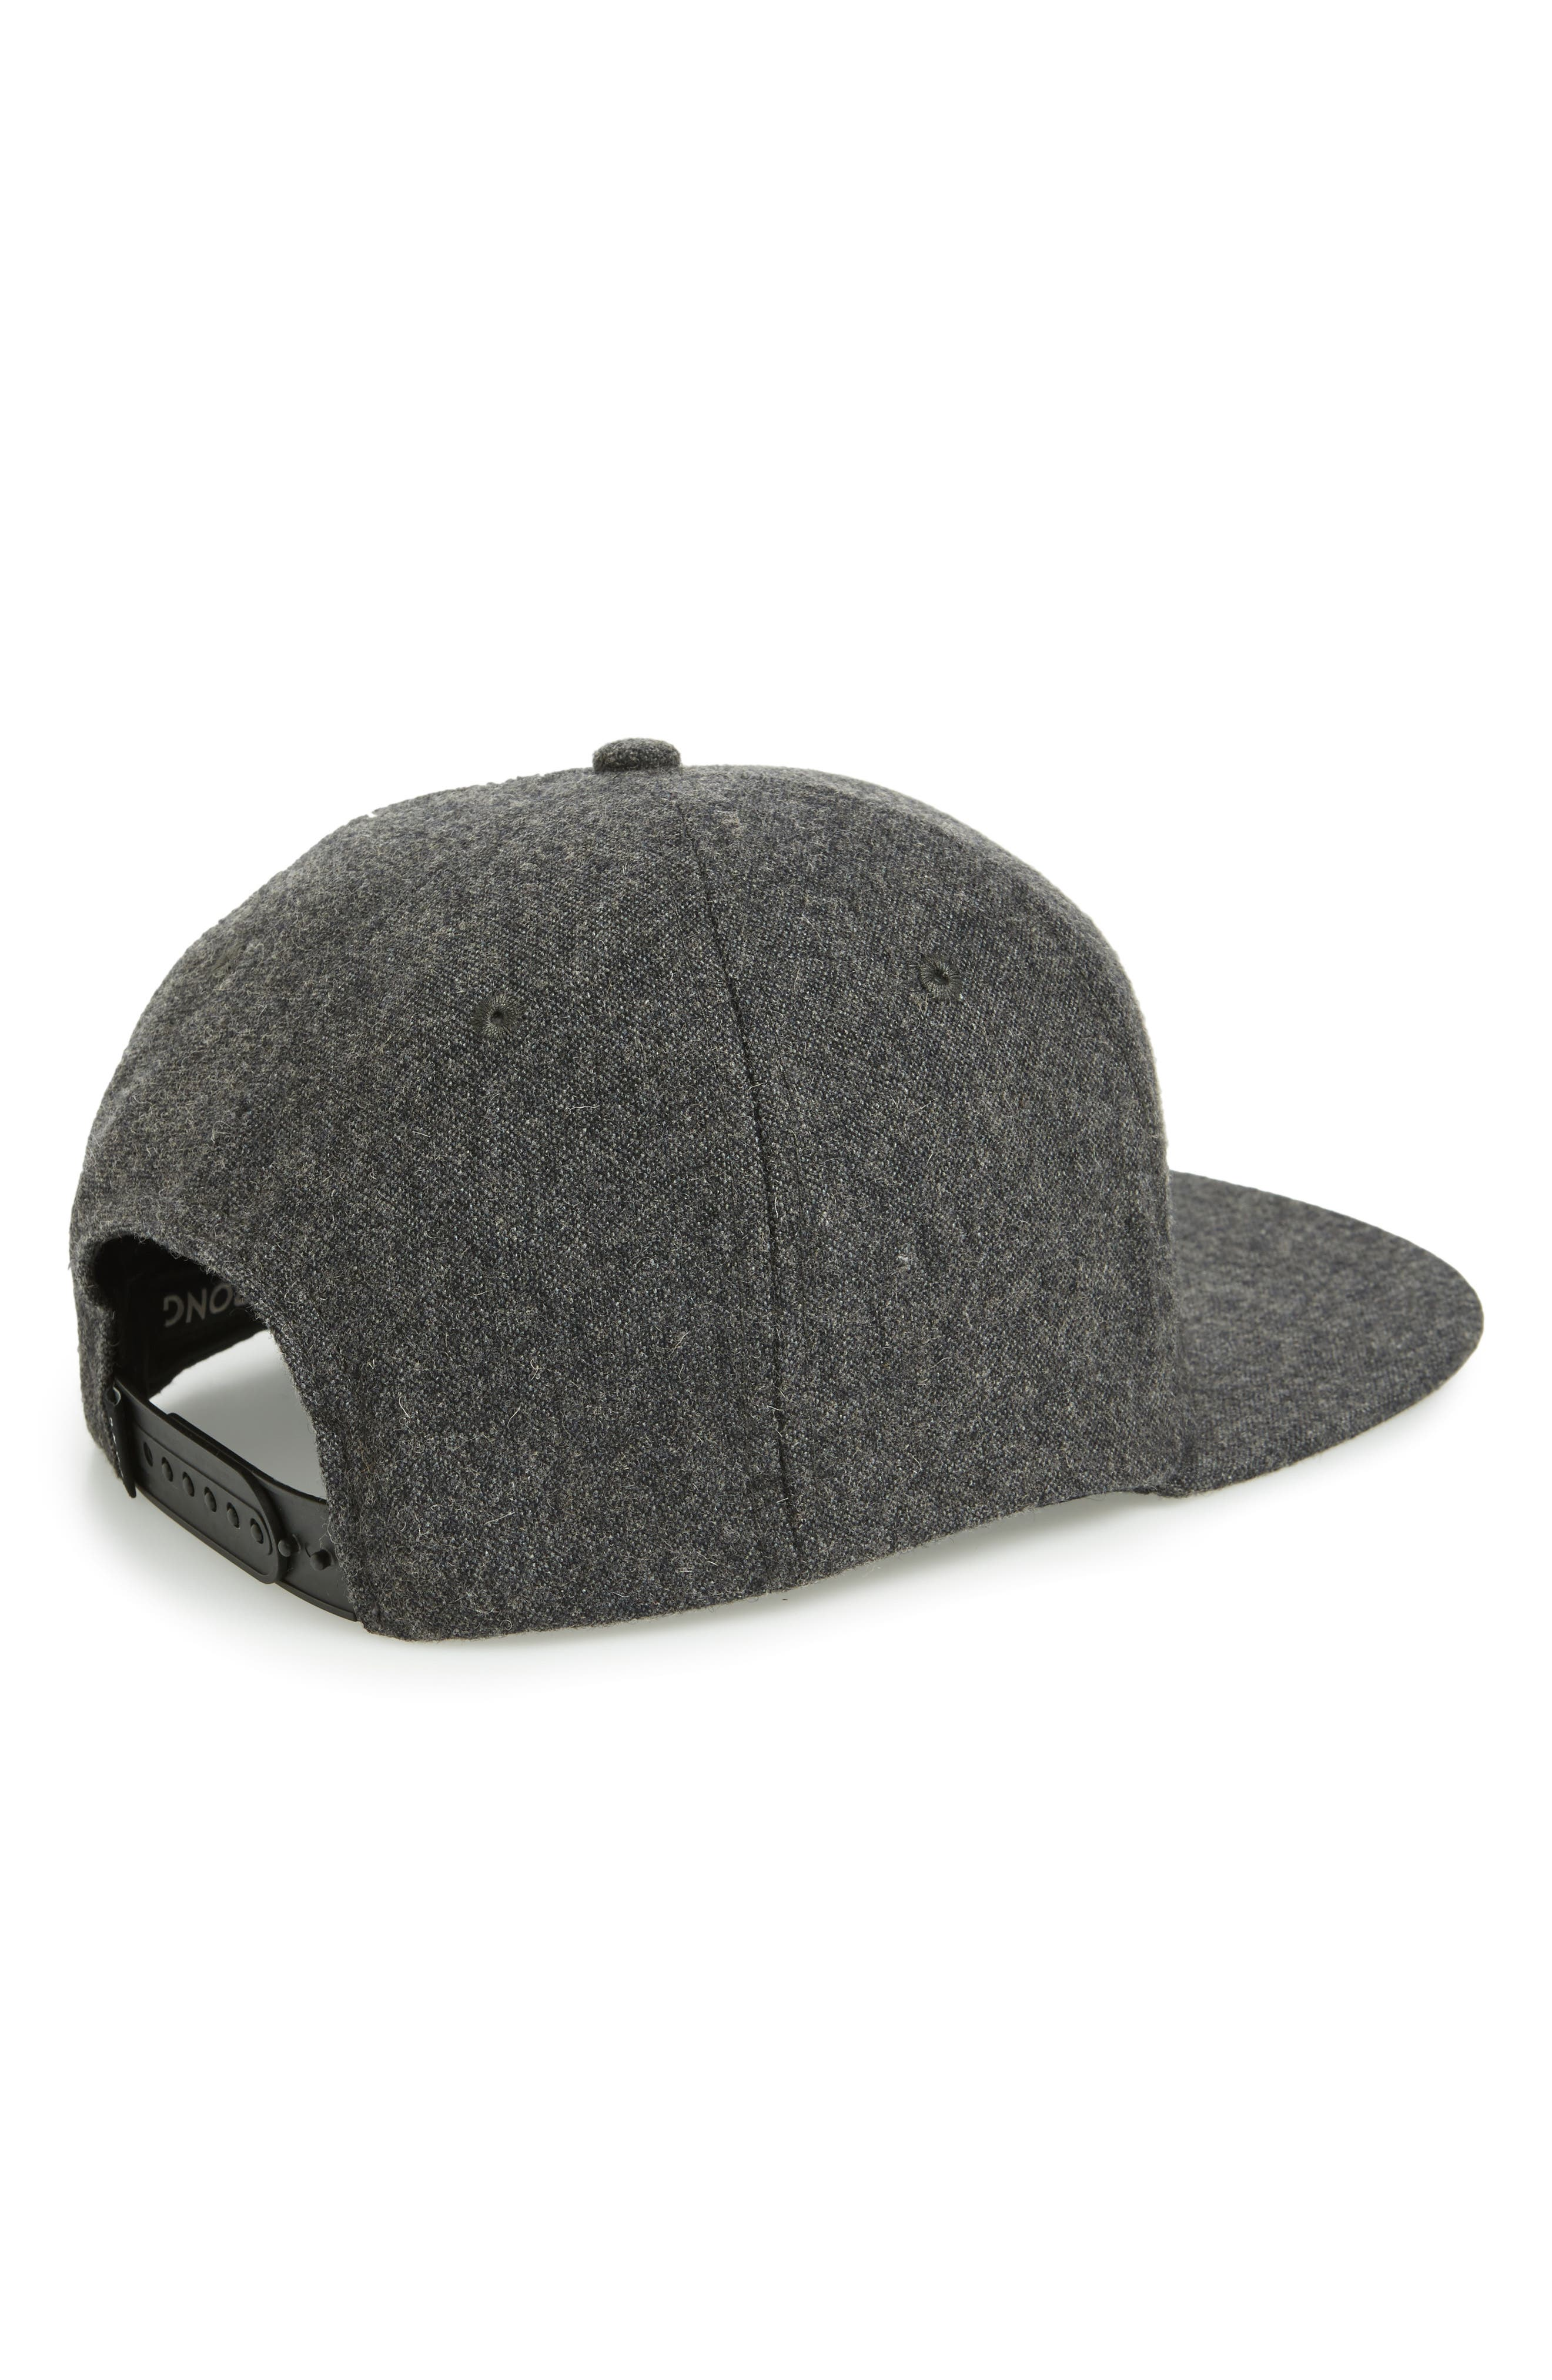 All Day Snapback Cap,                             Alternate thumbnail 3, color,                             BLACK HEATHER